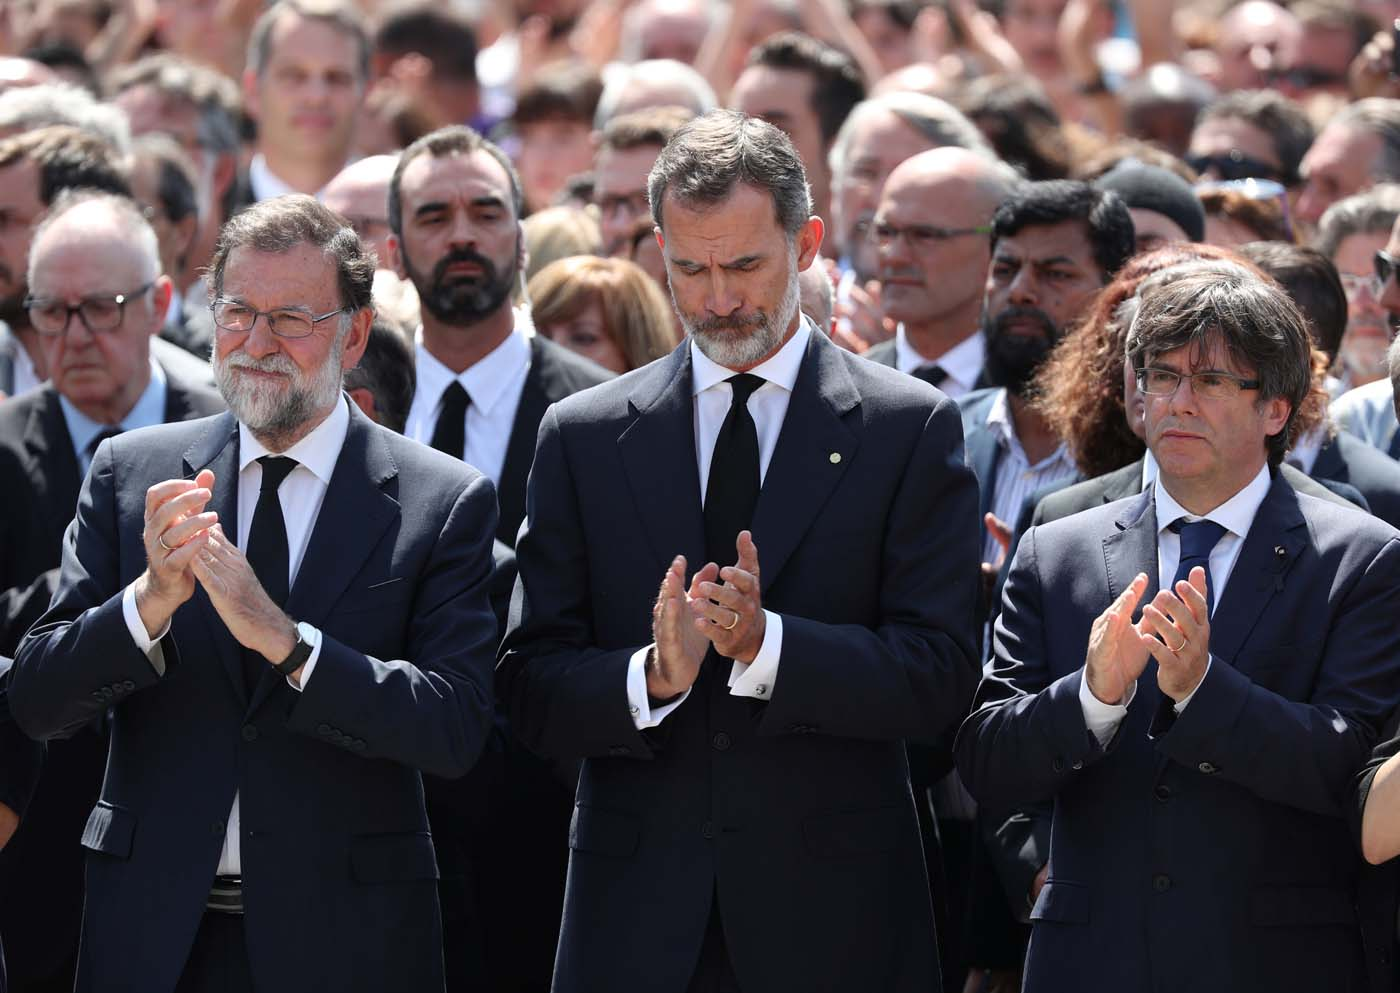 King Felipe of Spain sits between Prime Minister Mariano Rajoy and President of the Generalitat of Catalonia Carles Puigdemont as they observe a minute of silence in Placa de Catalunya, a day after a van crashed into pedestrians at Las Ramblas in Barcelona, Spain August 18, 2017. REUTERS/Sergio Perez